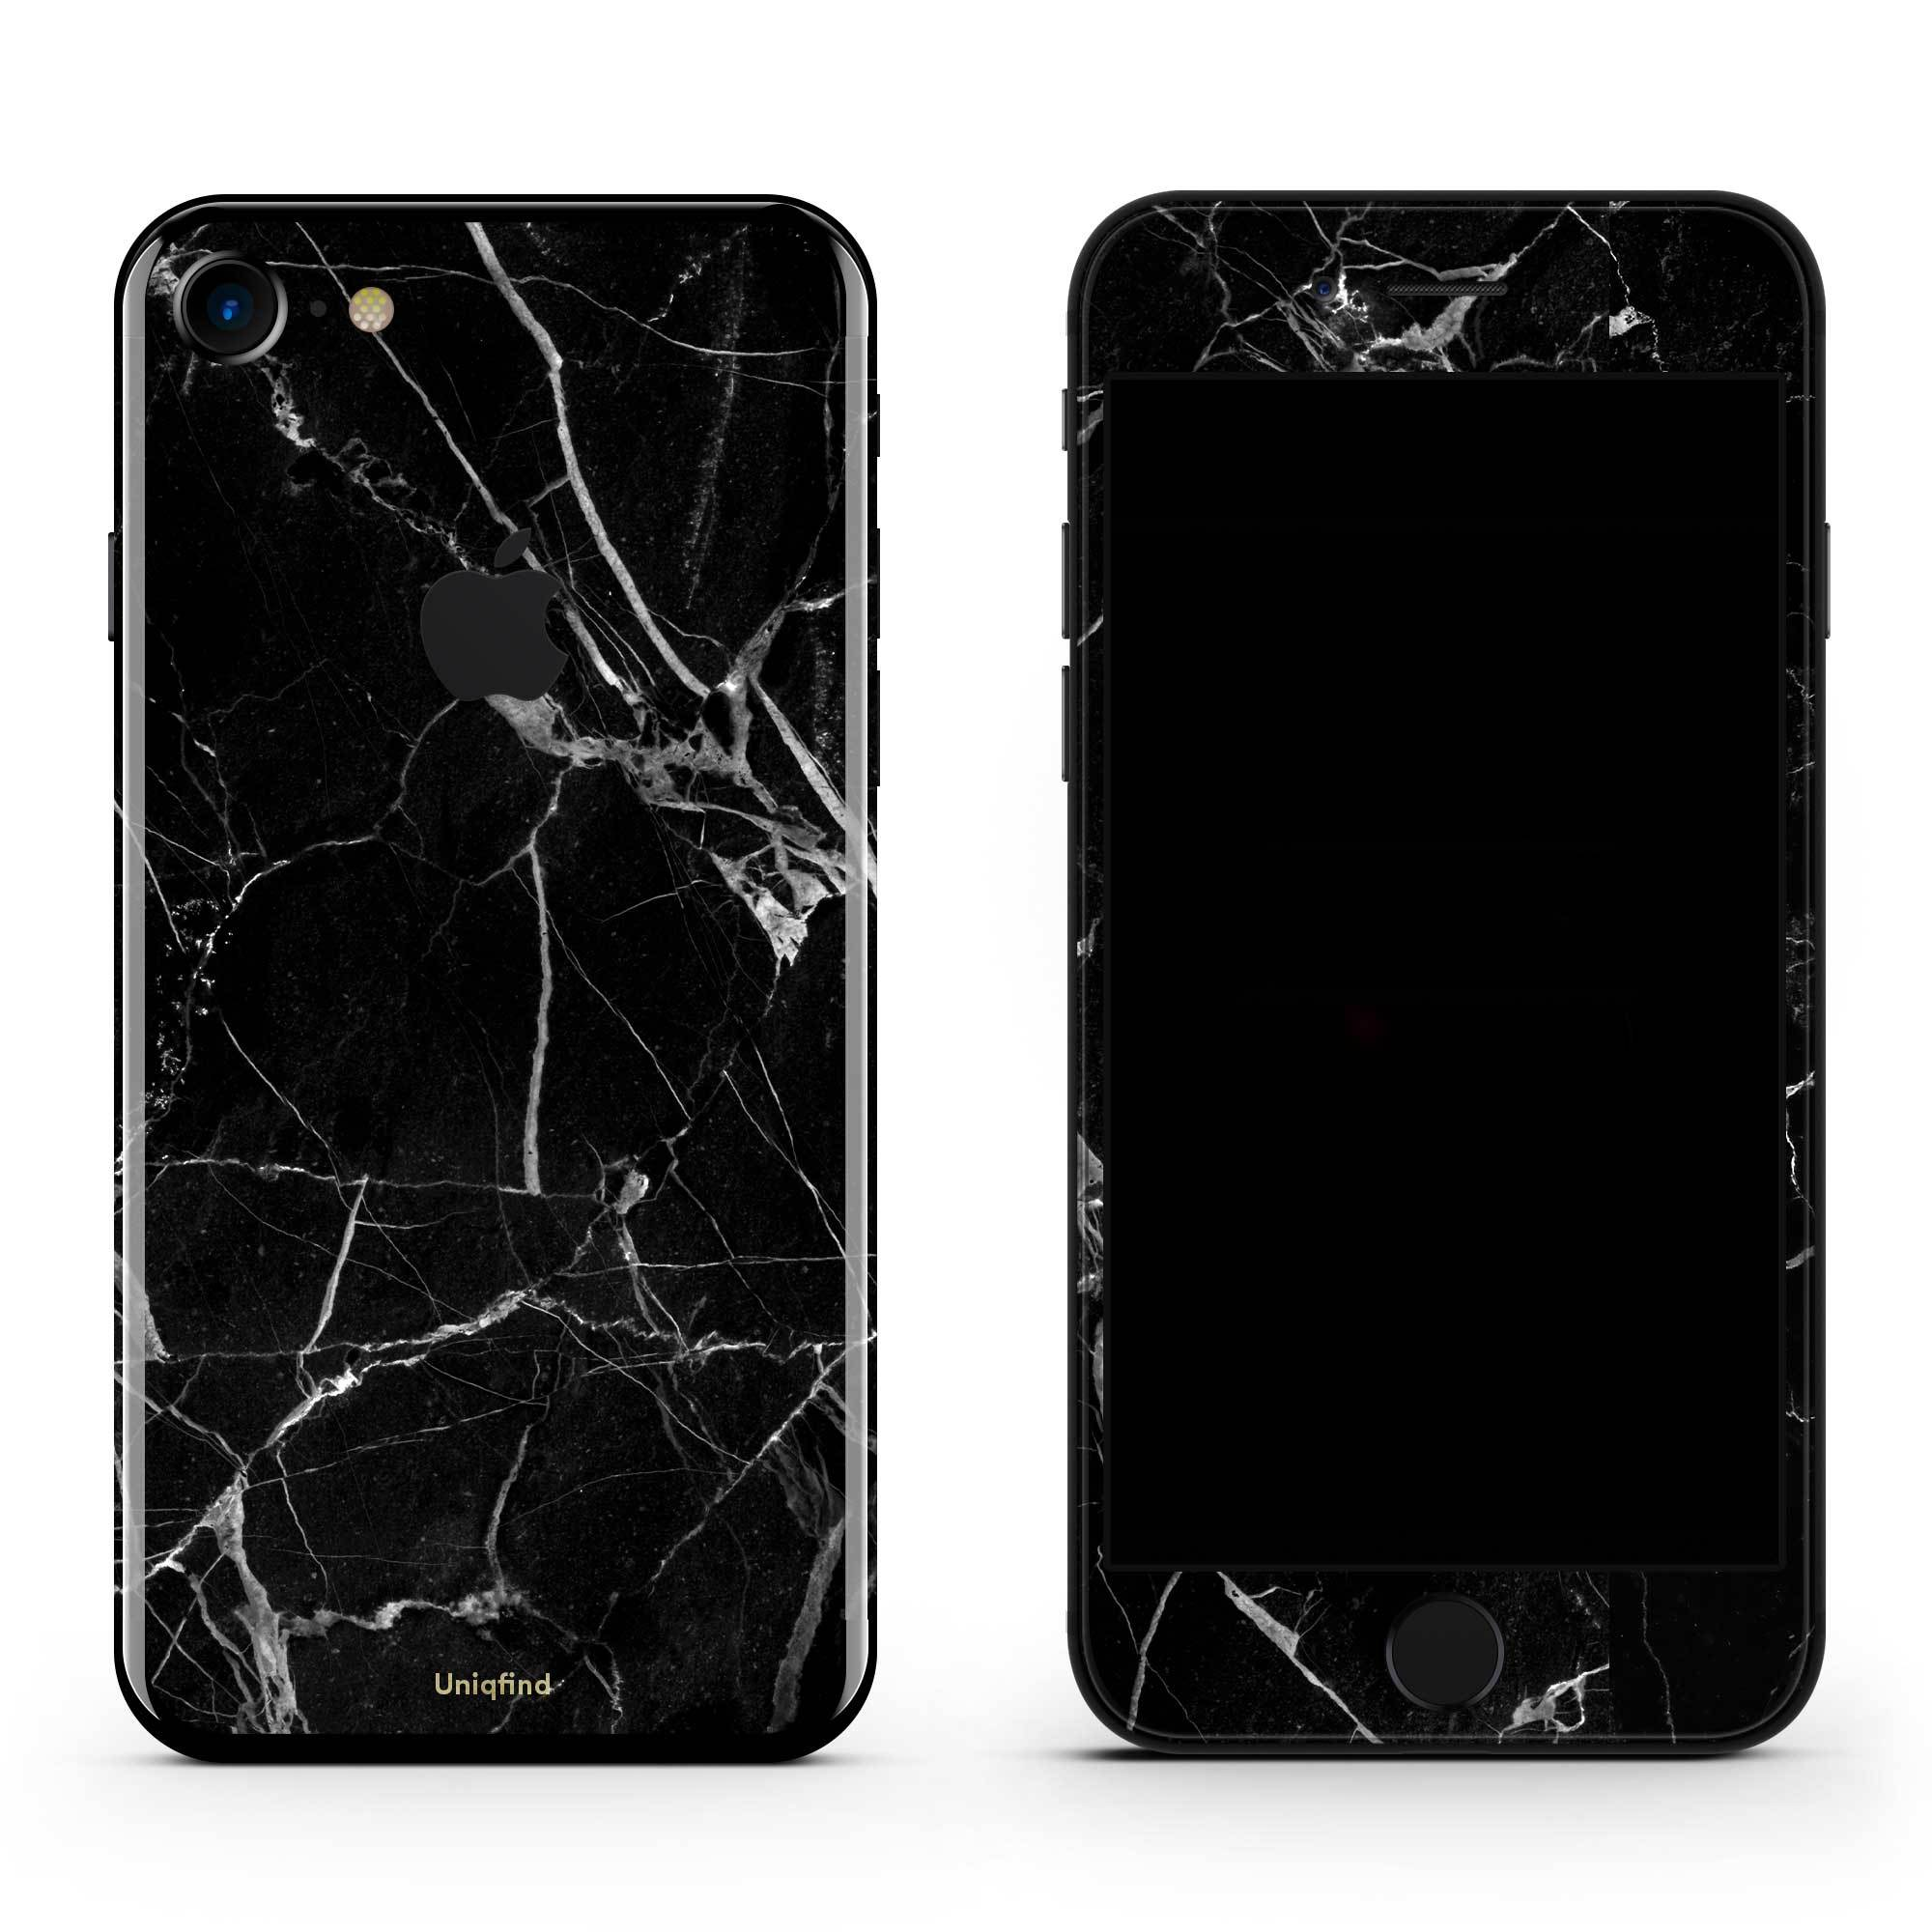 Black Hyper Marble iPhone 6/6S Plus Skin + Case